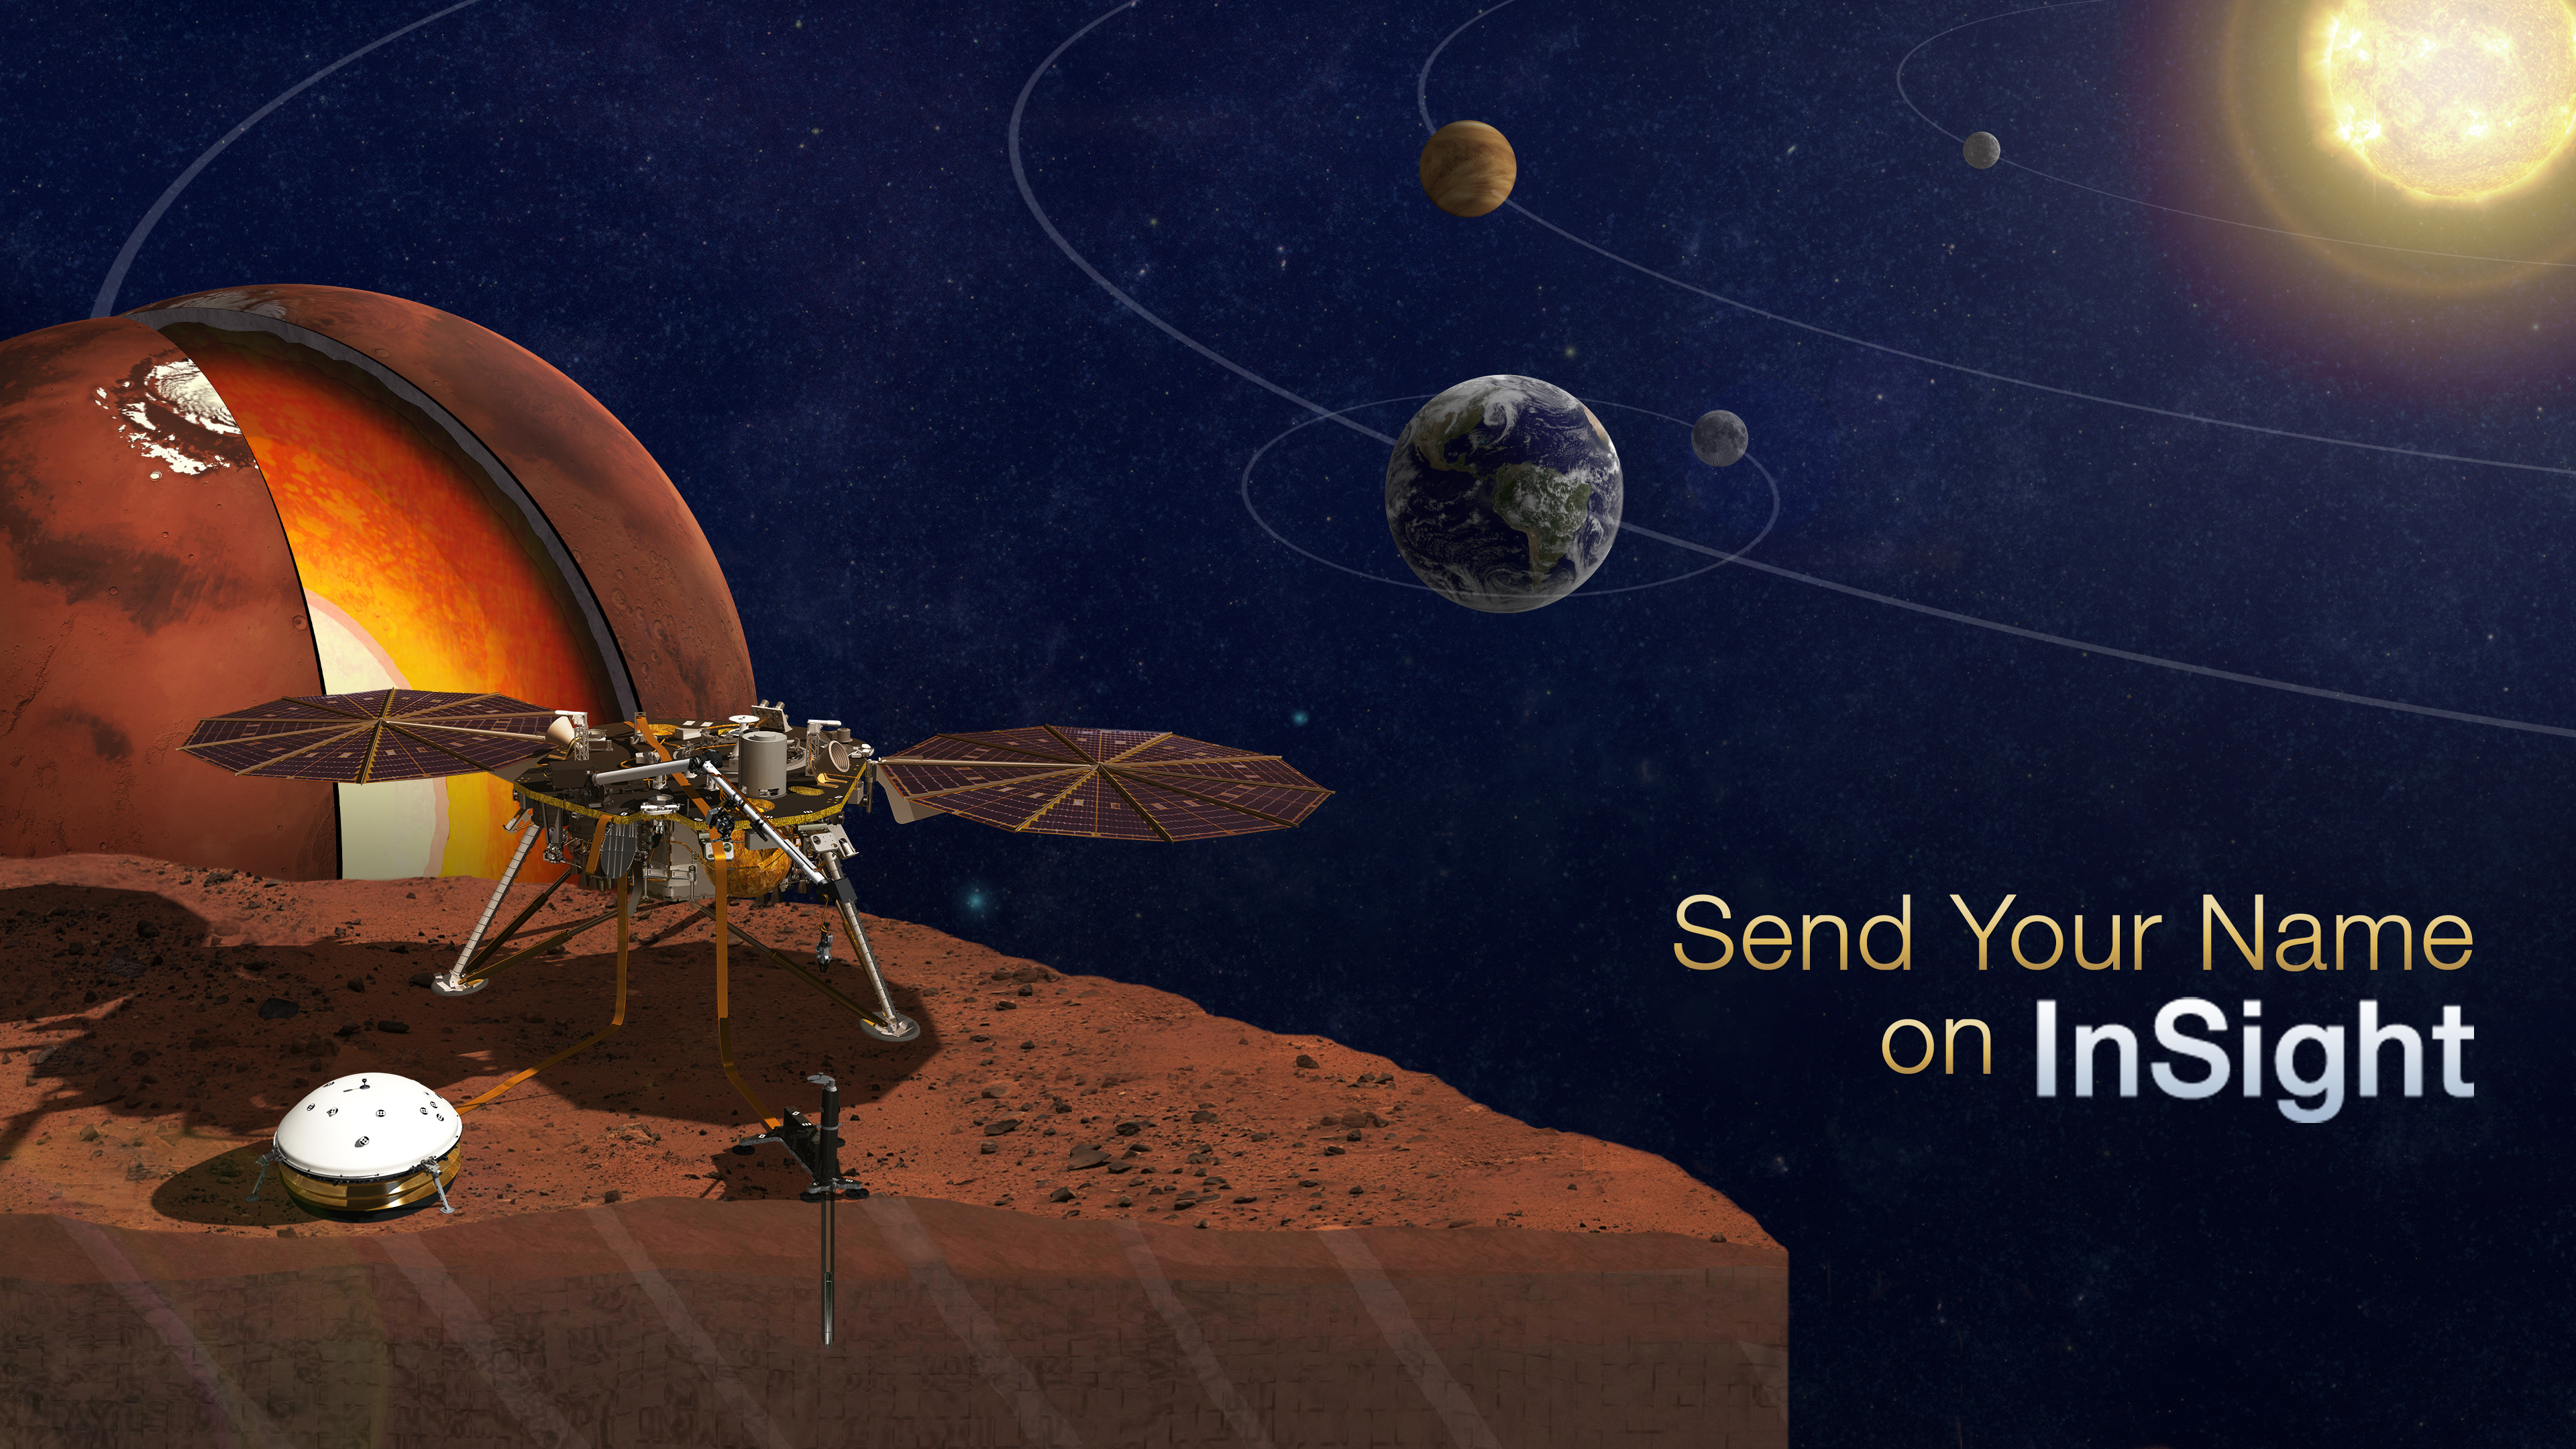 Send Your Name To Mars On NASAs Next Red Planet Mission